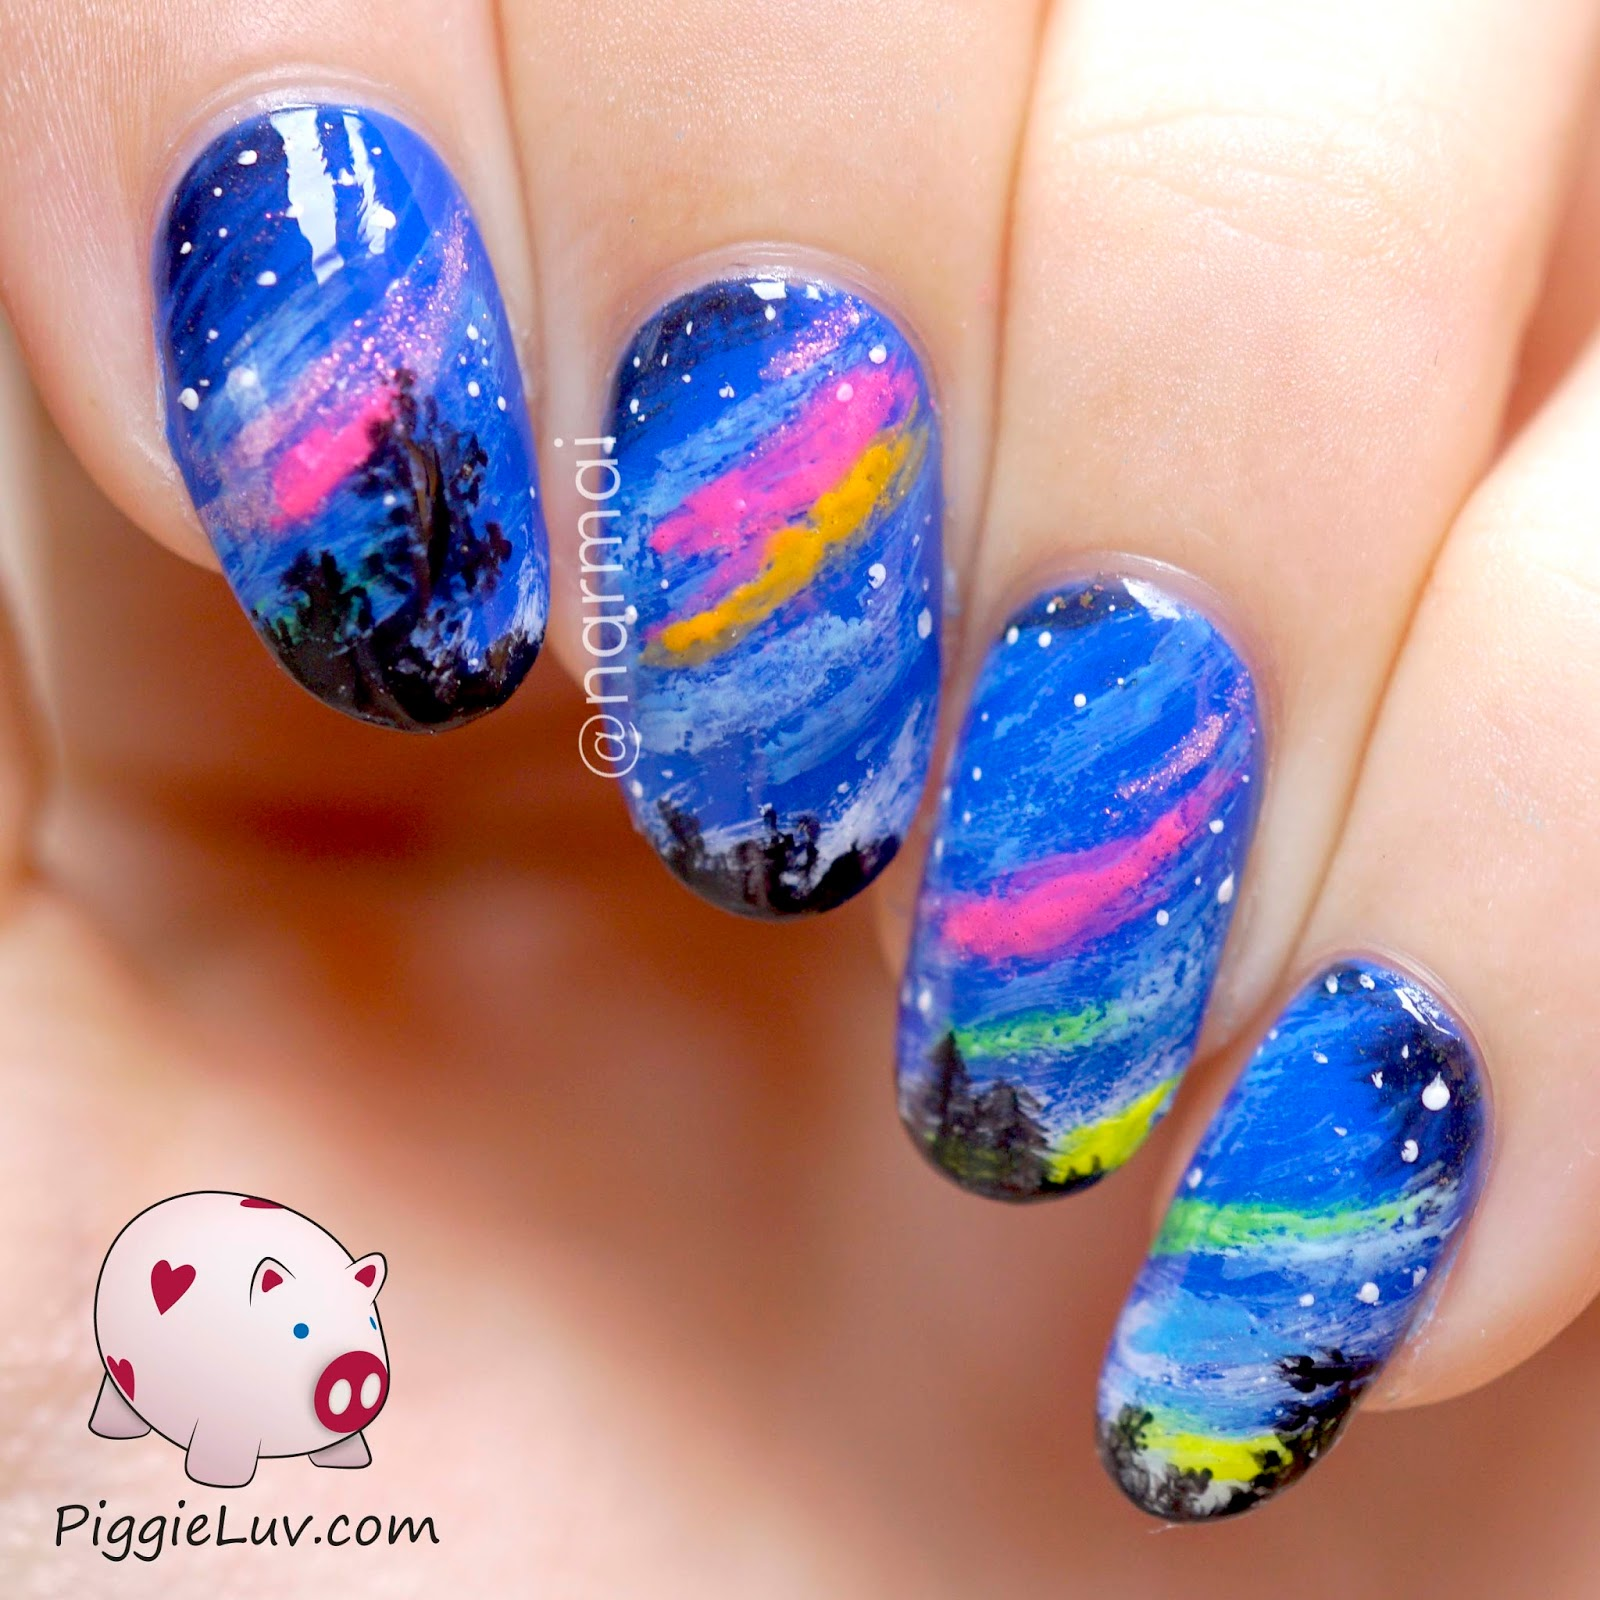 PiggieLuv: Colorful Glow In The Dark Northern Lights Nail Art